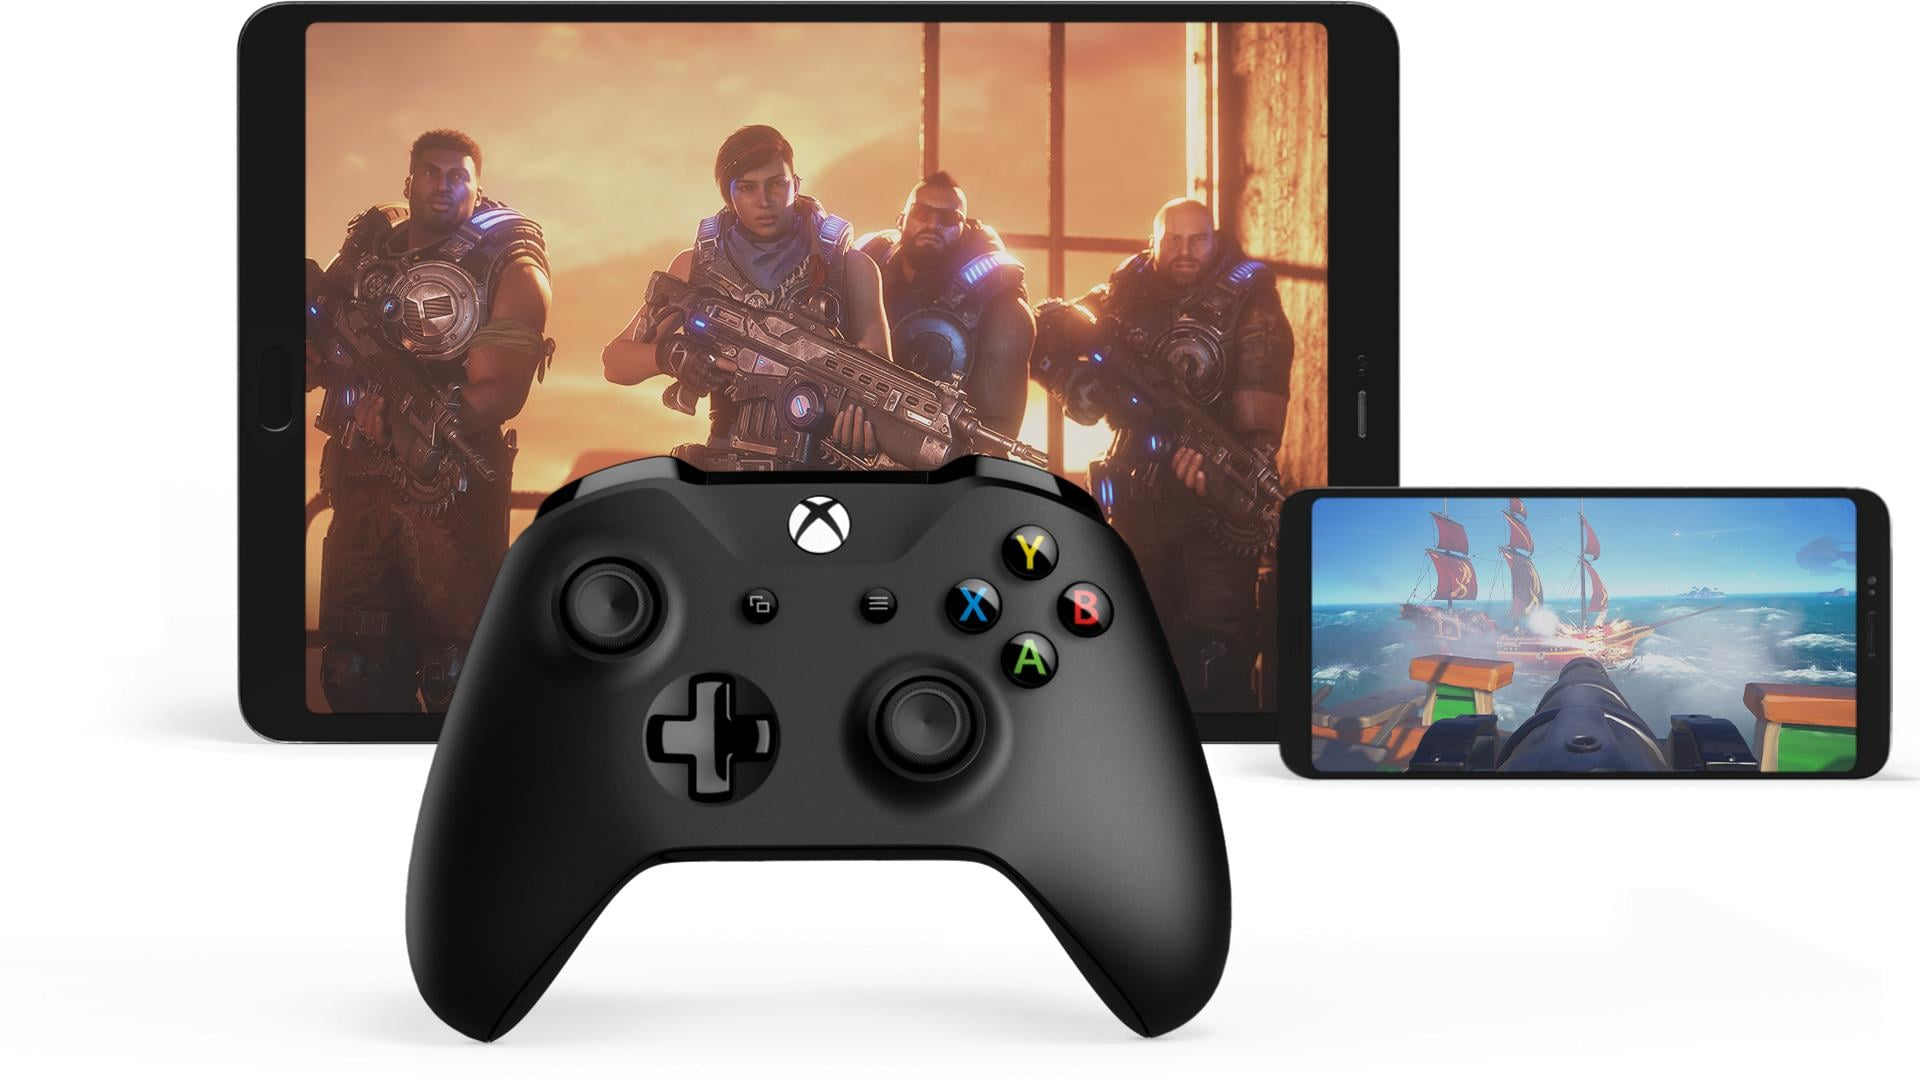 Microsoft teases TV streaming stick for playing Xbox games